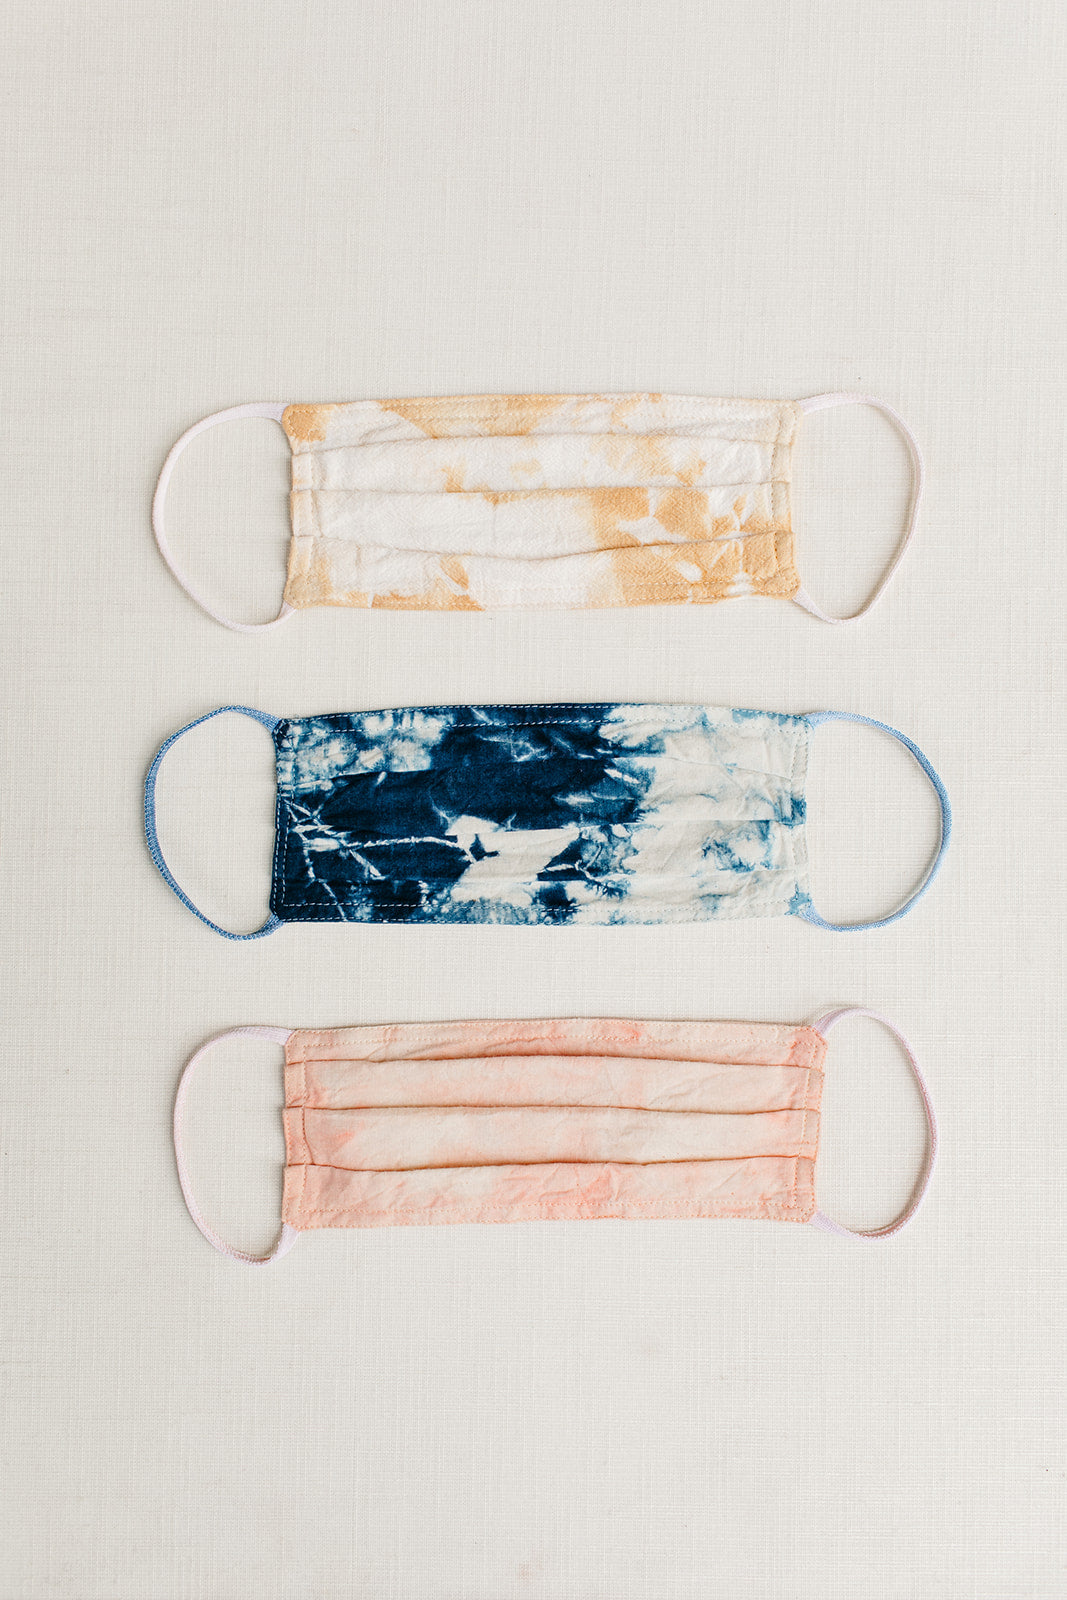 Indigo Tie Dye Cloth Face Mask - Tortoise & the Hare Clothing